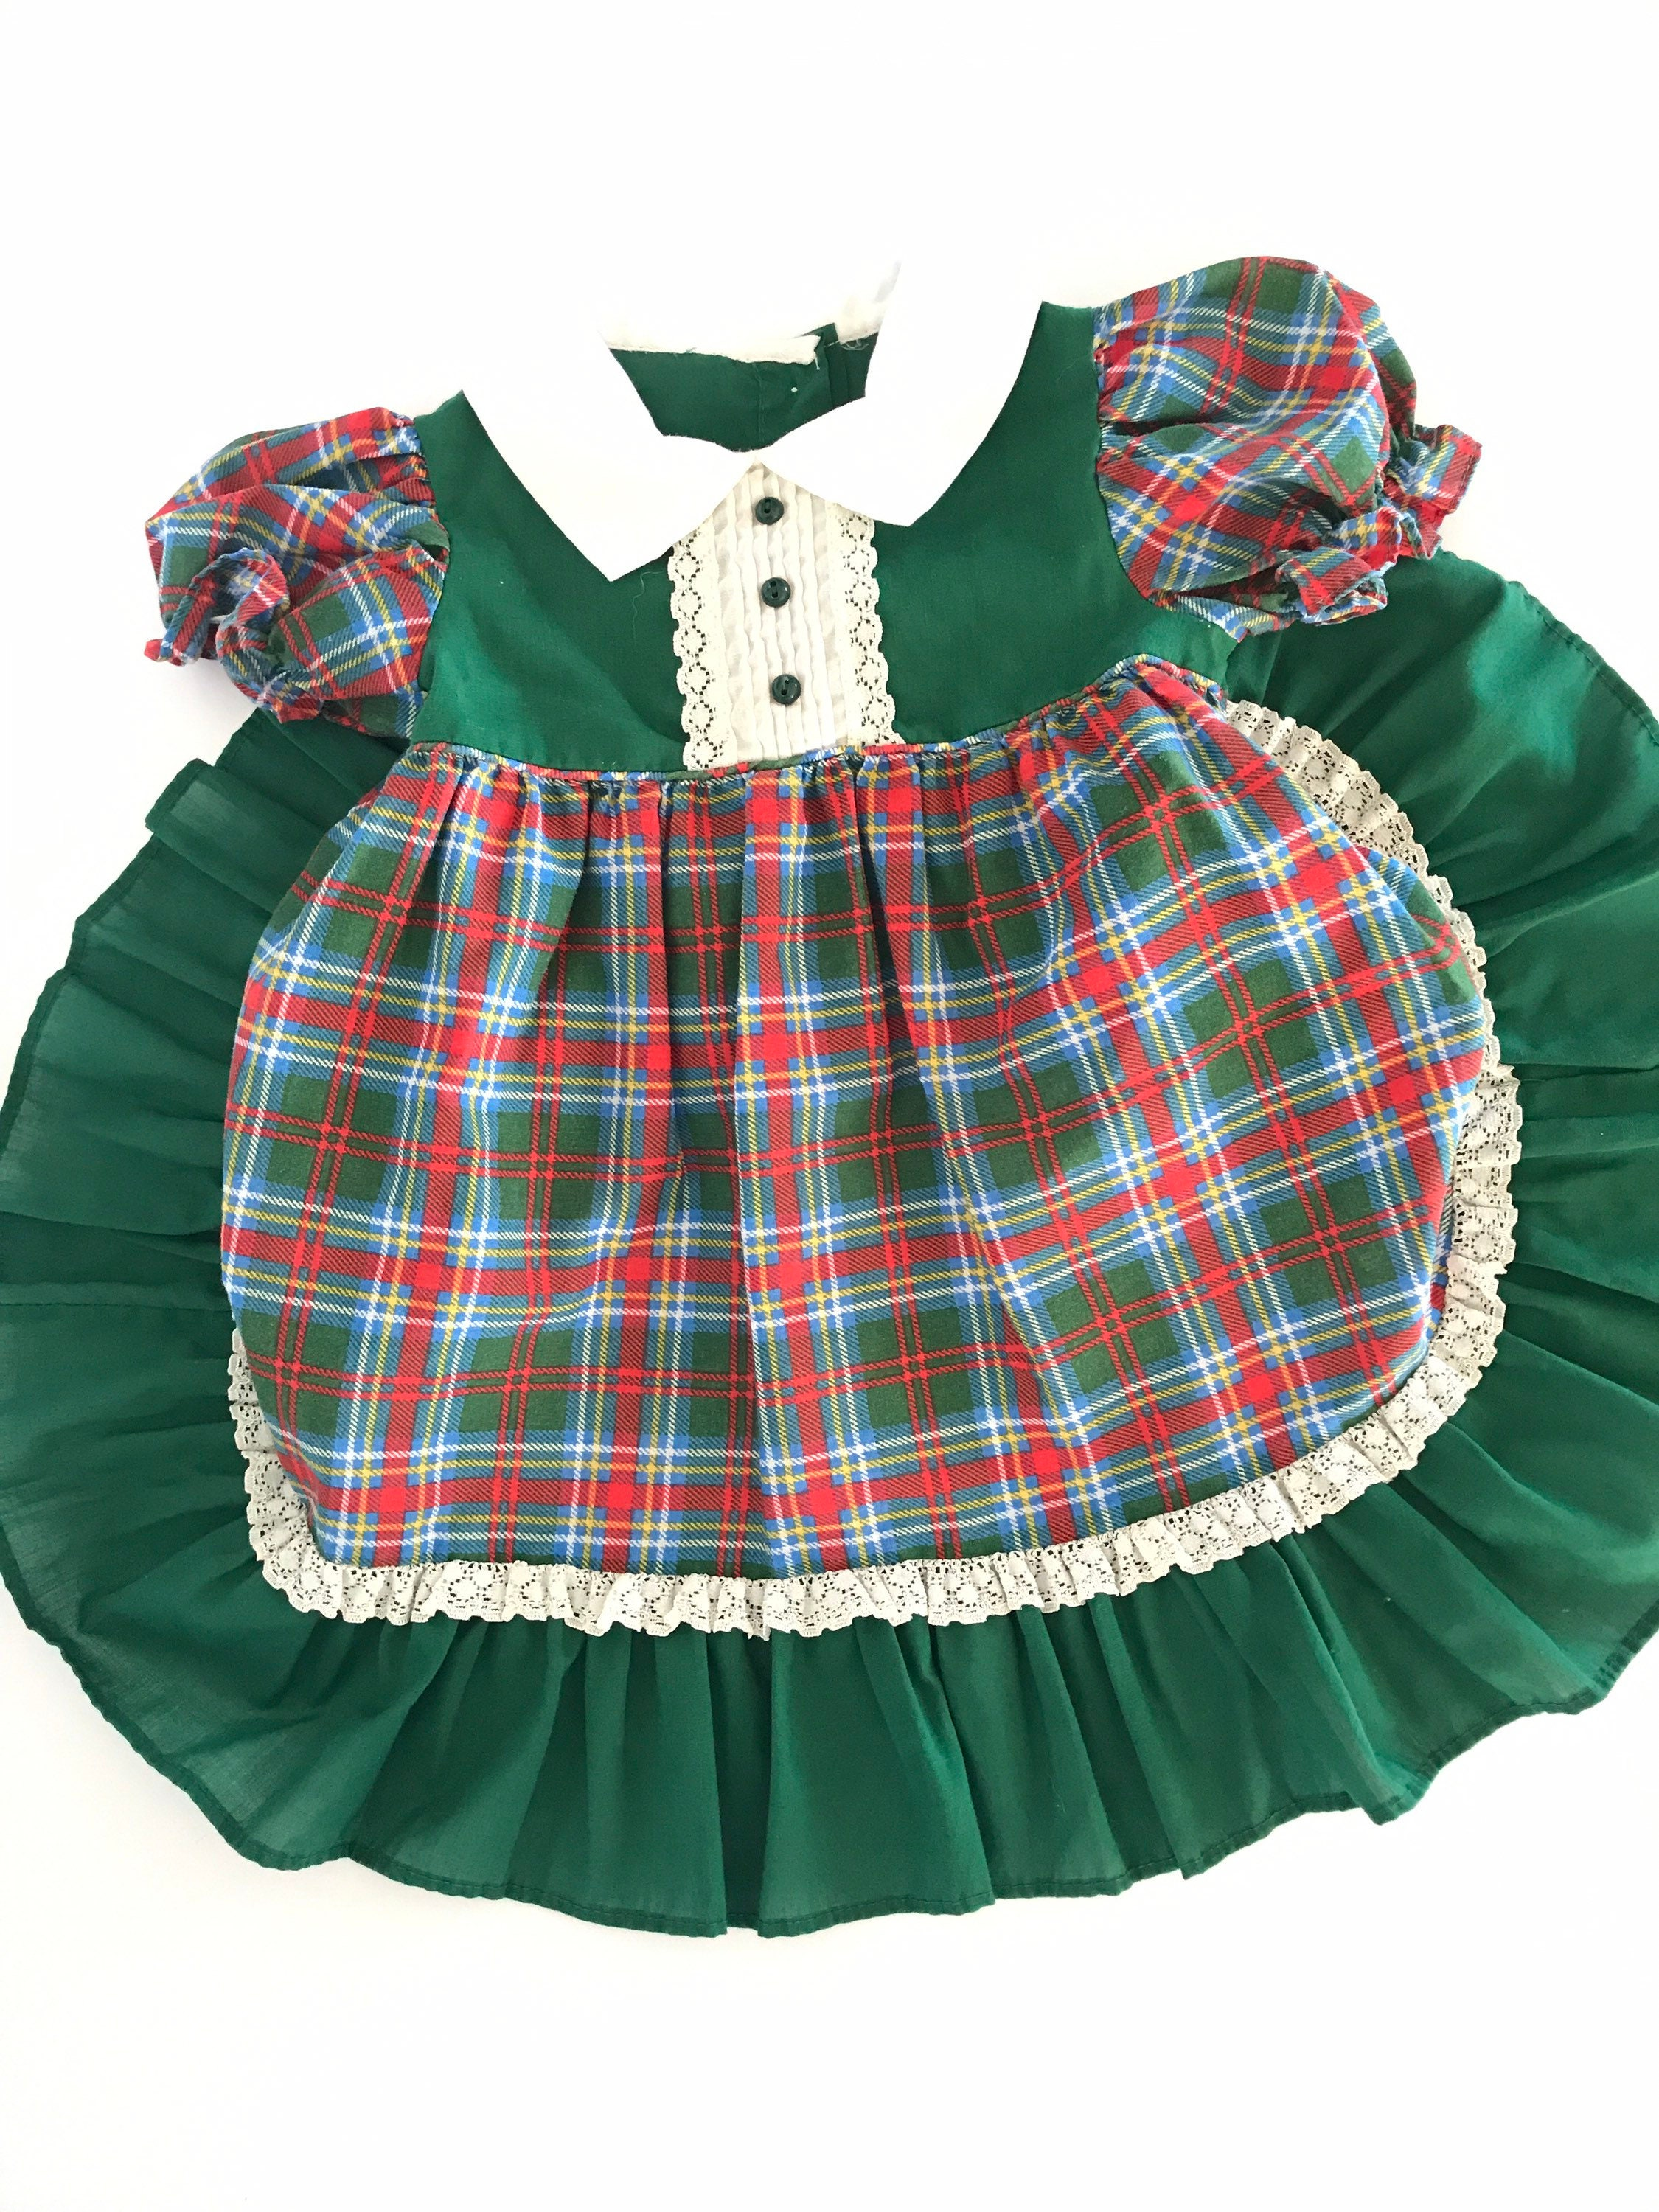 80s Dresses | Casual to Party Dresses Plaid Ruffle Dress, Vintage Toddler Girls Ruffle Dress, Holiday 2T, 1980s, Collar Tartan, Retro Baby Pageant $0.00 AT vintagedancer.com